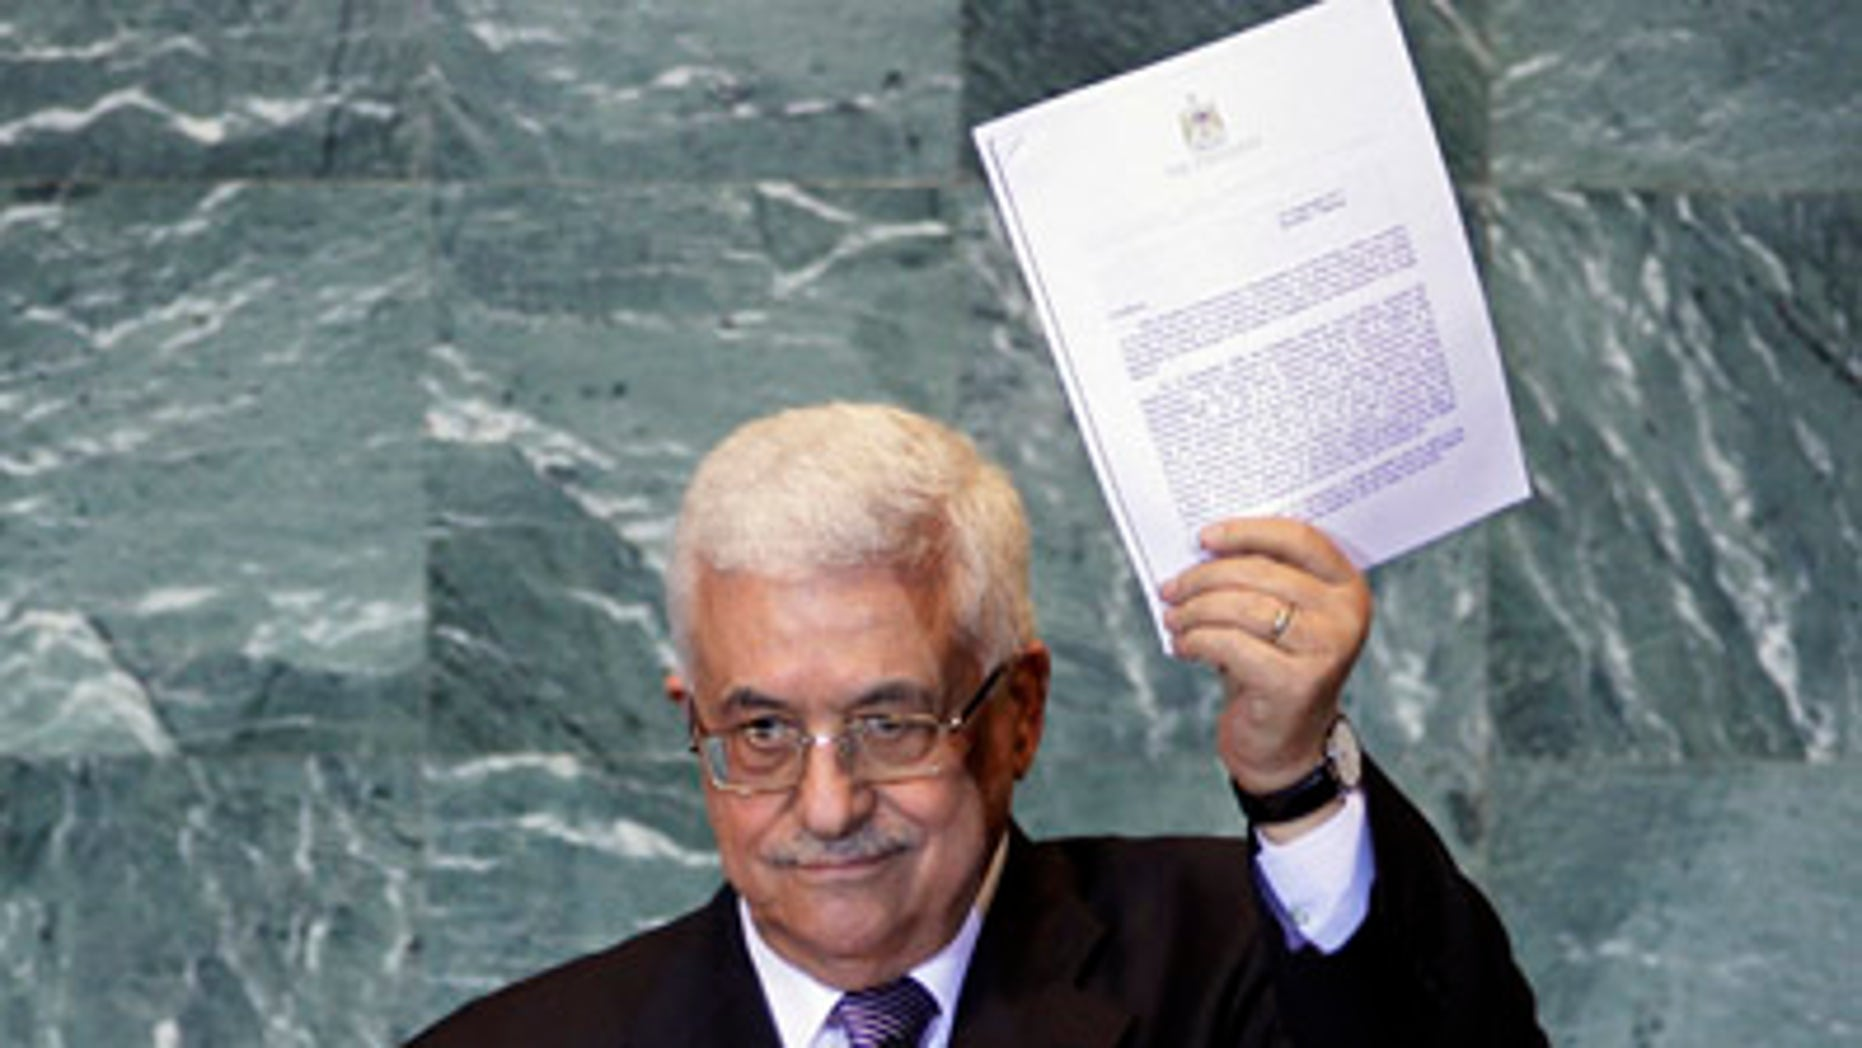 Sept. 23: Palestinian President Mahmoud Abbas holds a letter requesting recognition of Palestine as a state as he addresses the 66th session of the United Nations General Assembly at UN Headquarters.